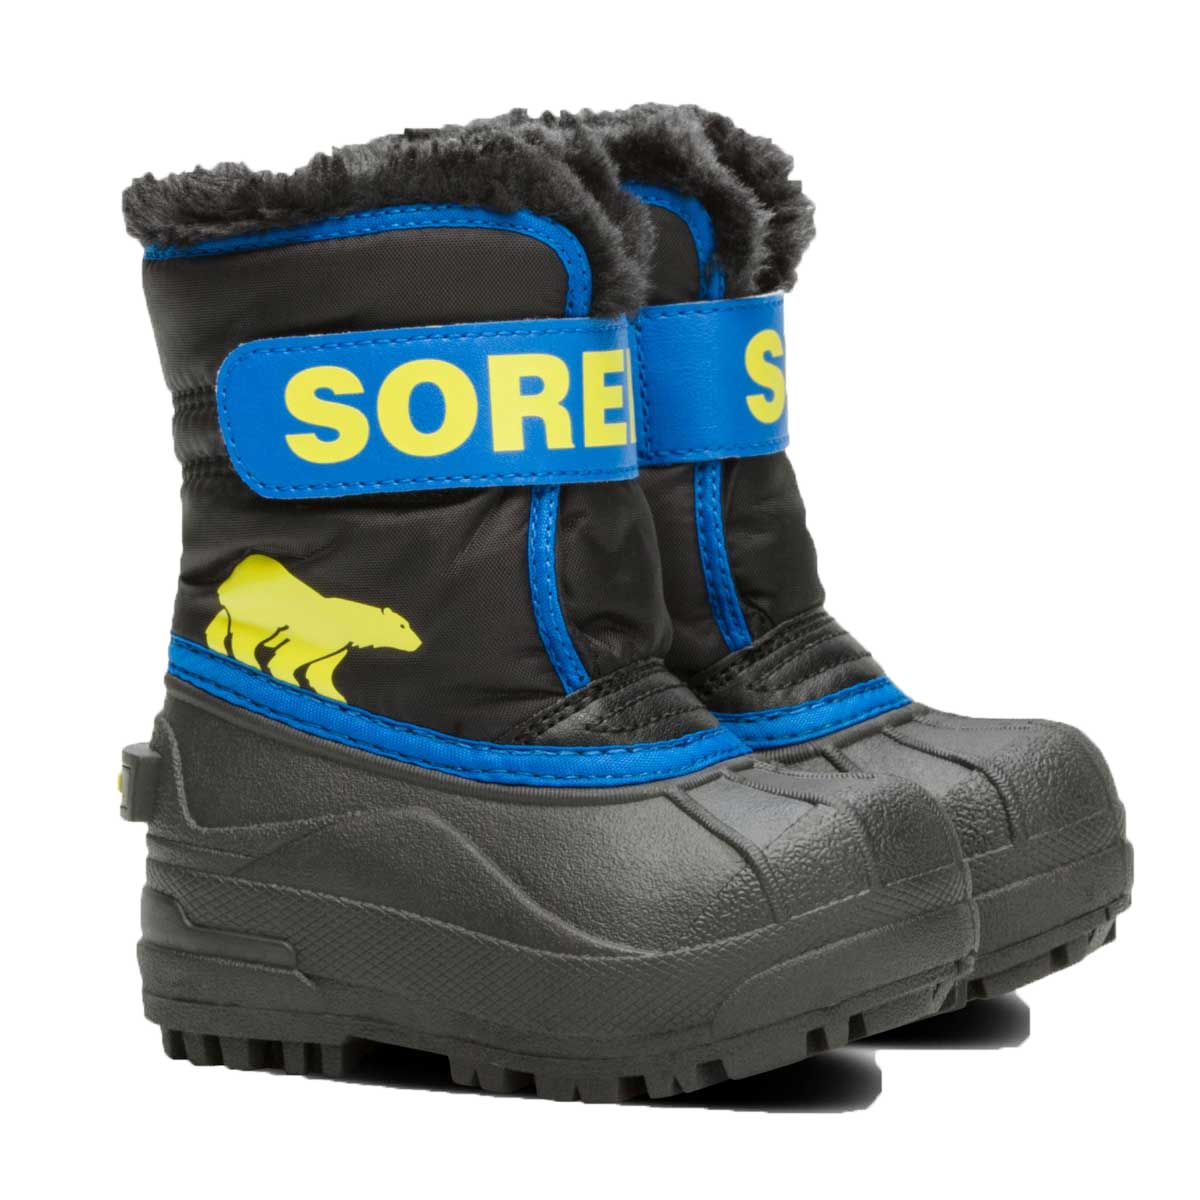 Sorel Toddlers' Snow Commander Boot in Black and Super Blue